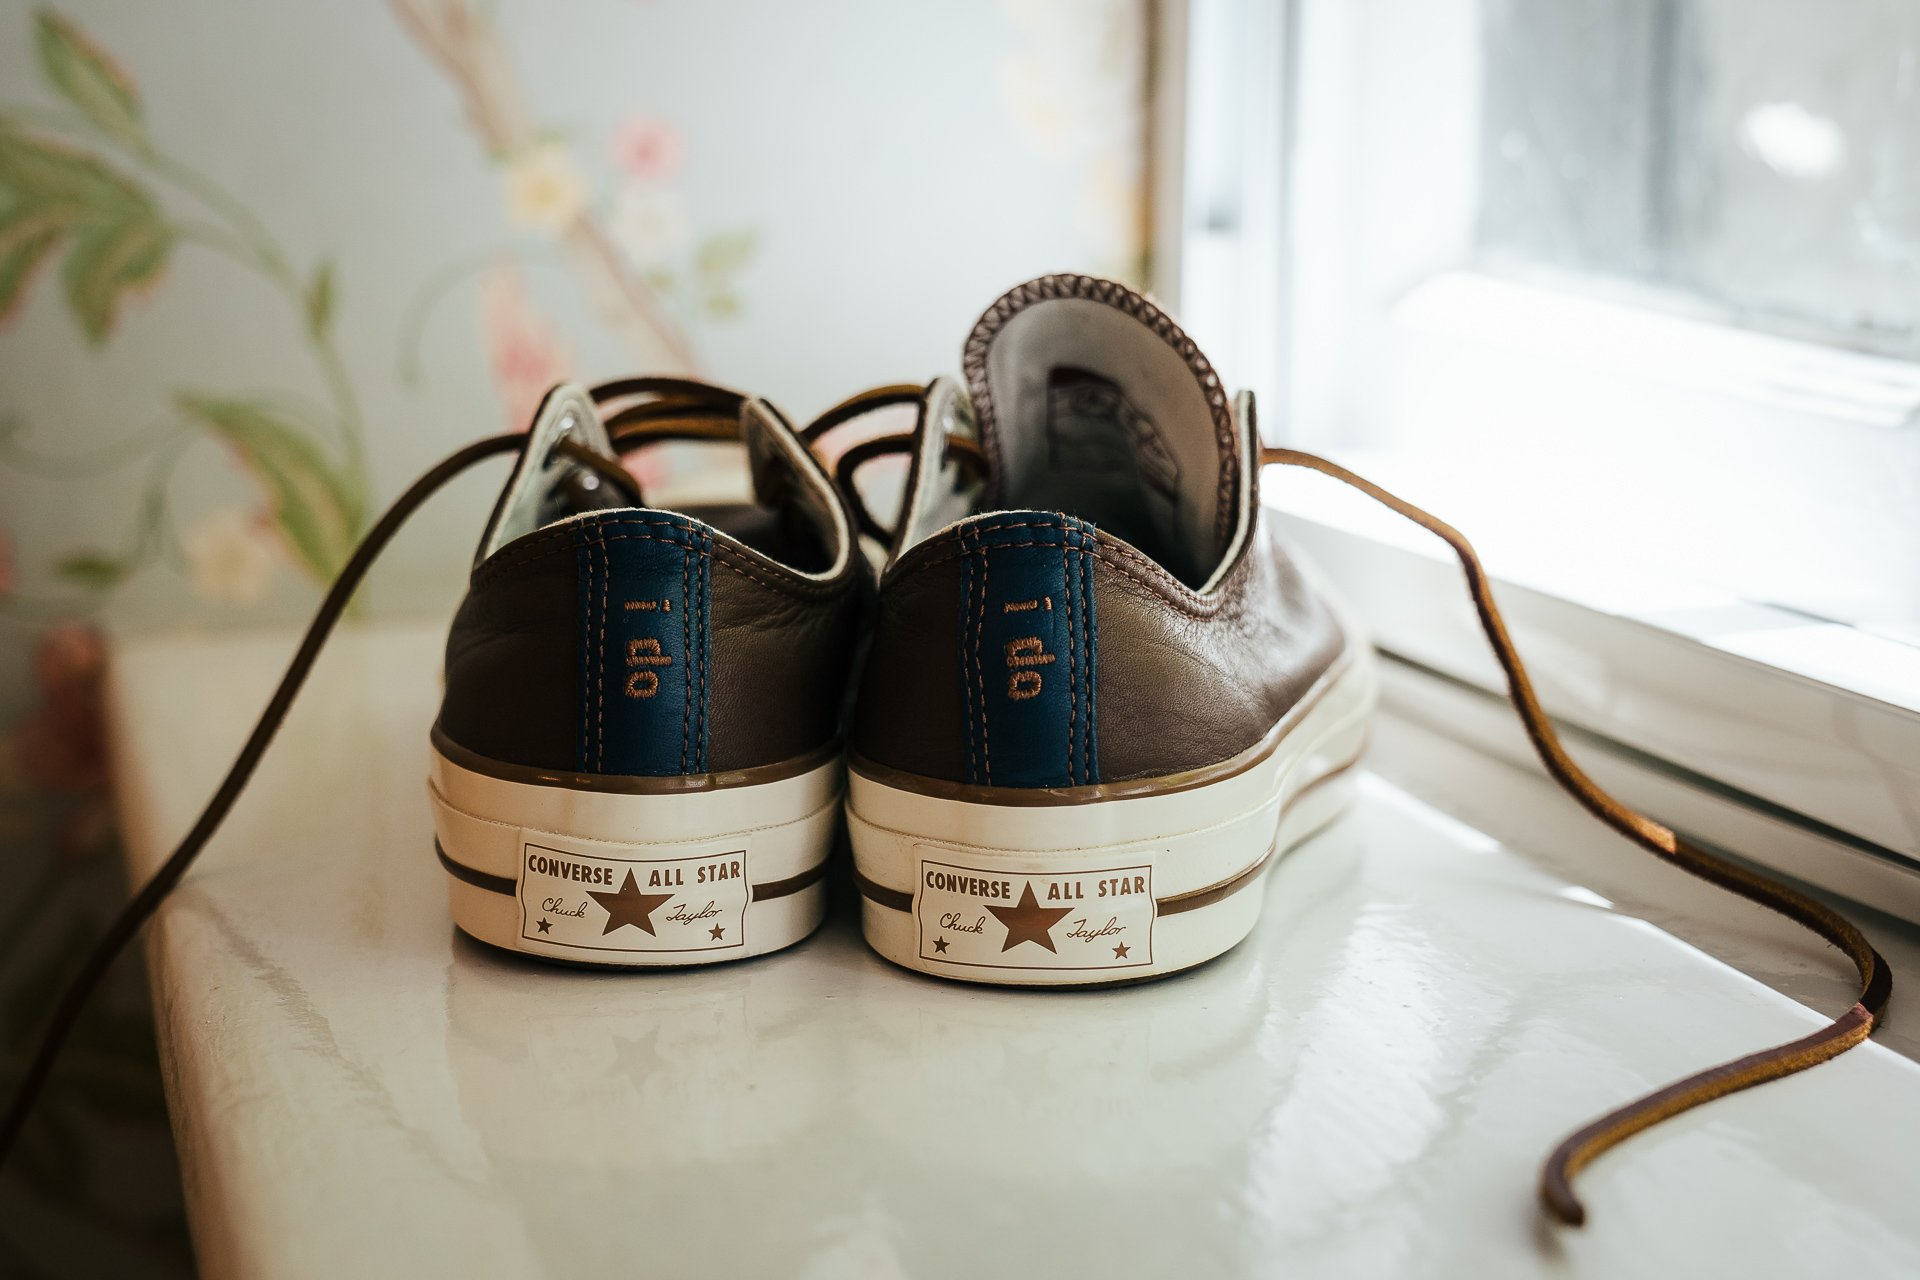 Personalised converse wedding shoes with 'I do' on the heel